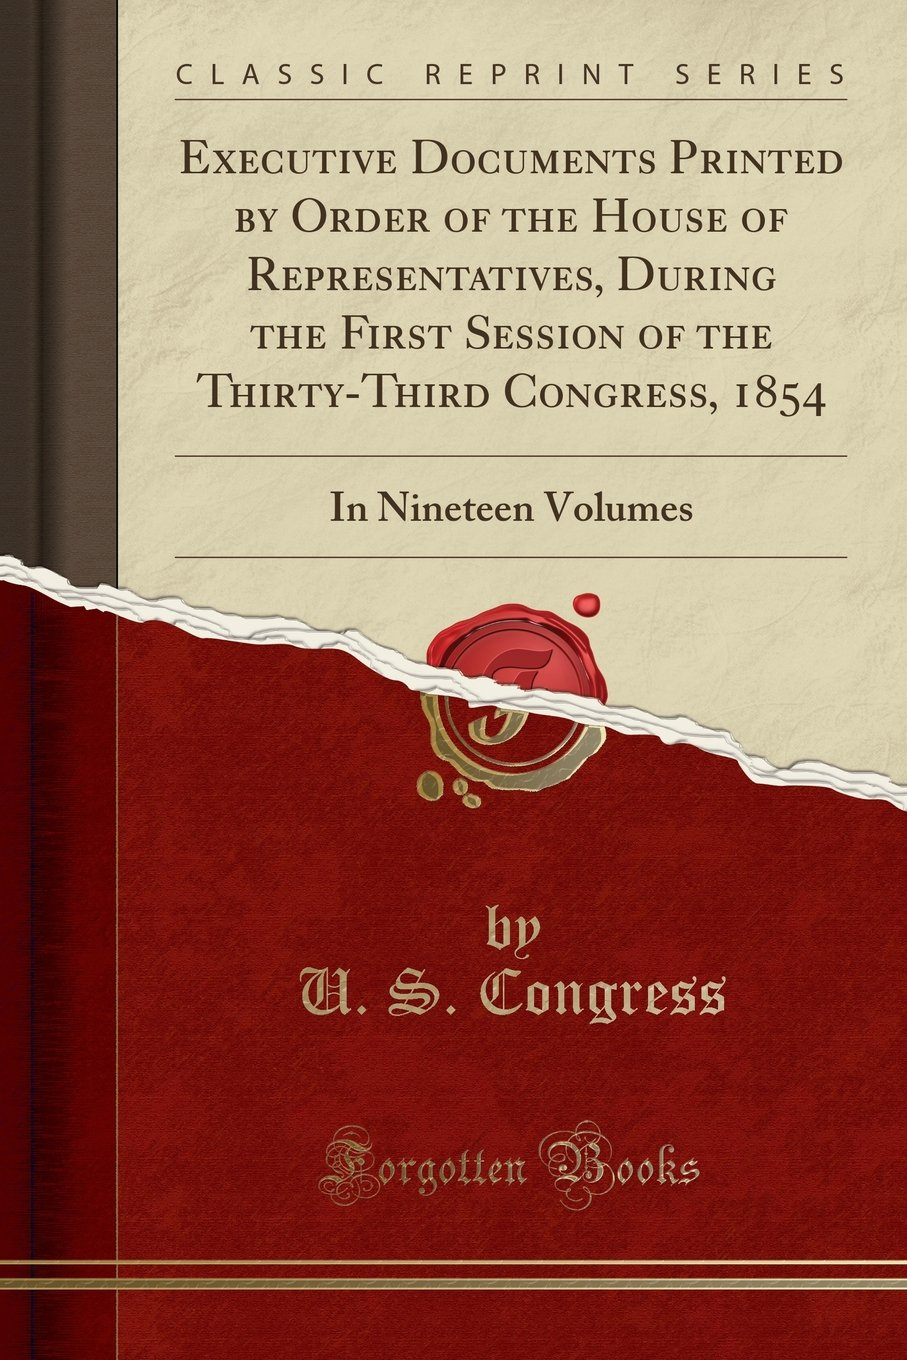 Executive Documents Printed by Order of the House of Representatives, During the First Session of the Thirty-Third Congress, 1854: In Nineteen Volumes (Classic Reprint) pdf epub